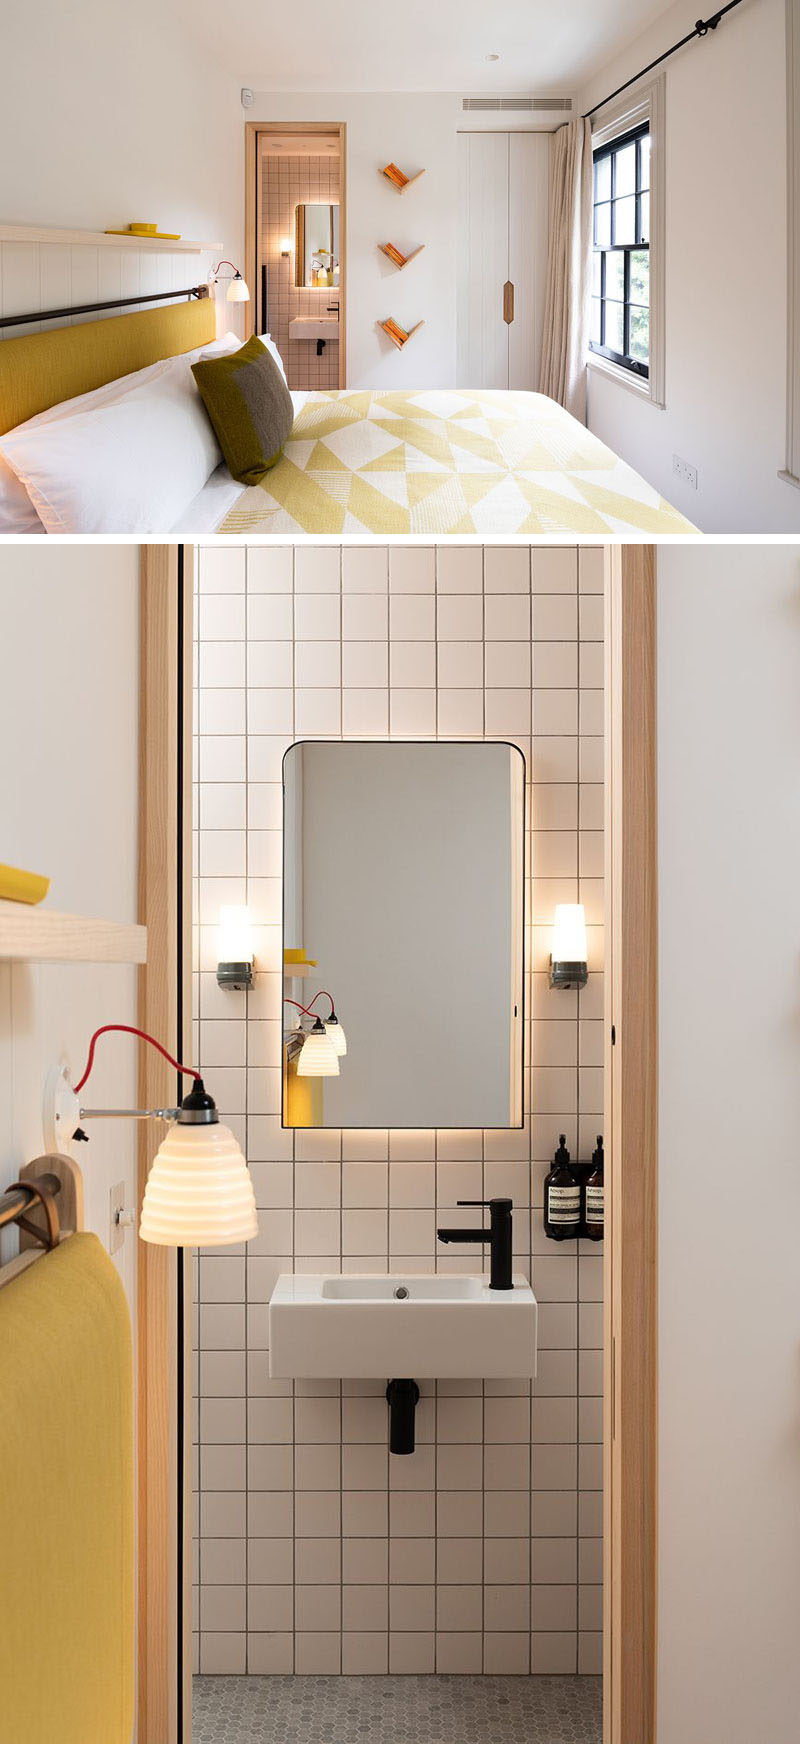 In this modern bedroom, yellow has been chosen as the accent color, while in the ensuite bathroom, square tiles cover the wall, and hidden lighting highlights the shape of the mirror. #ModernBedroom #ModernBathroom